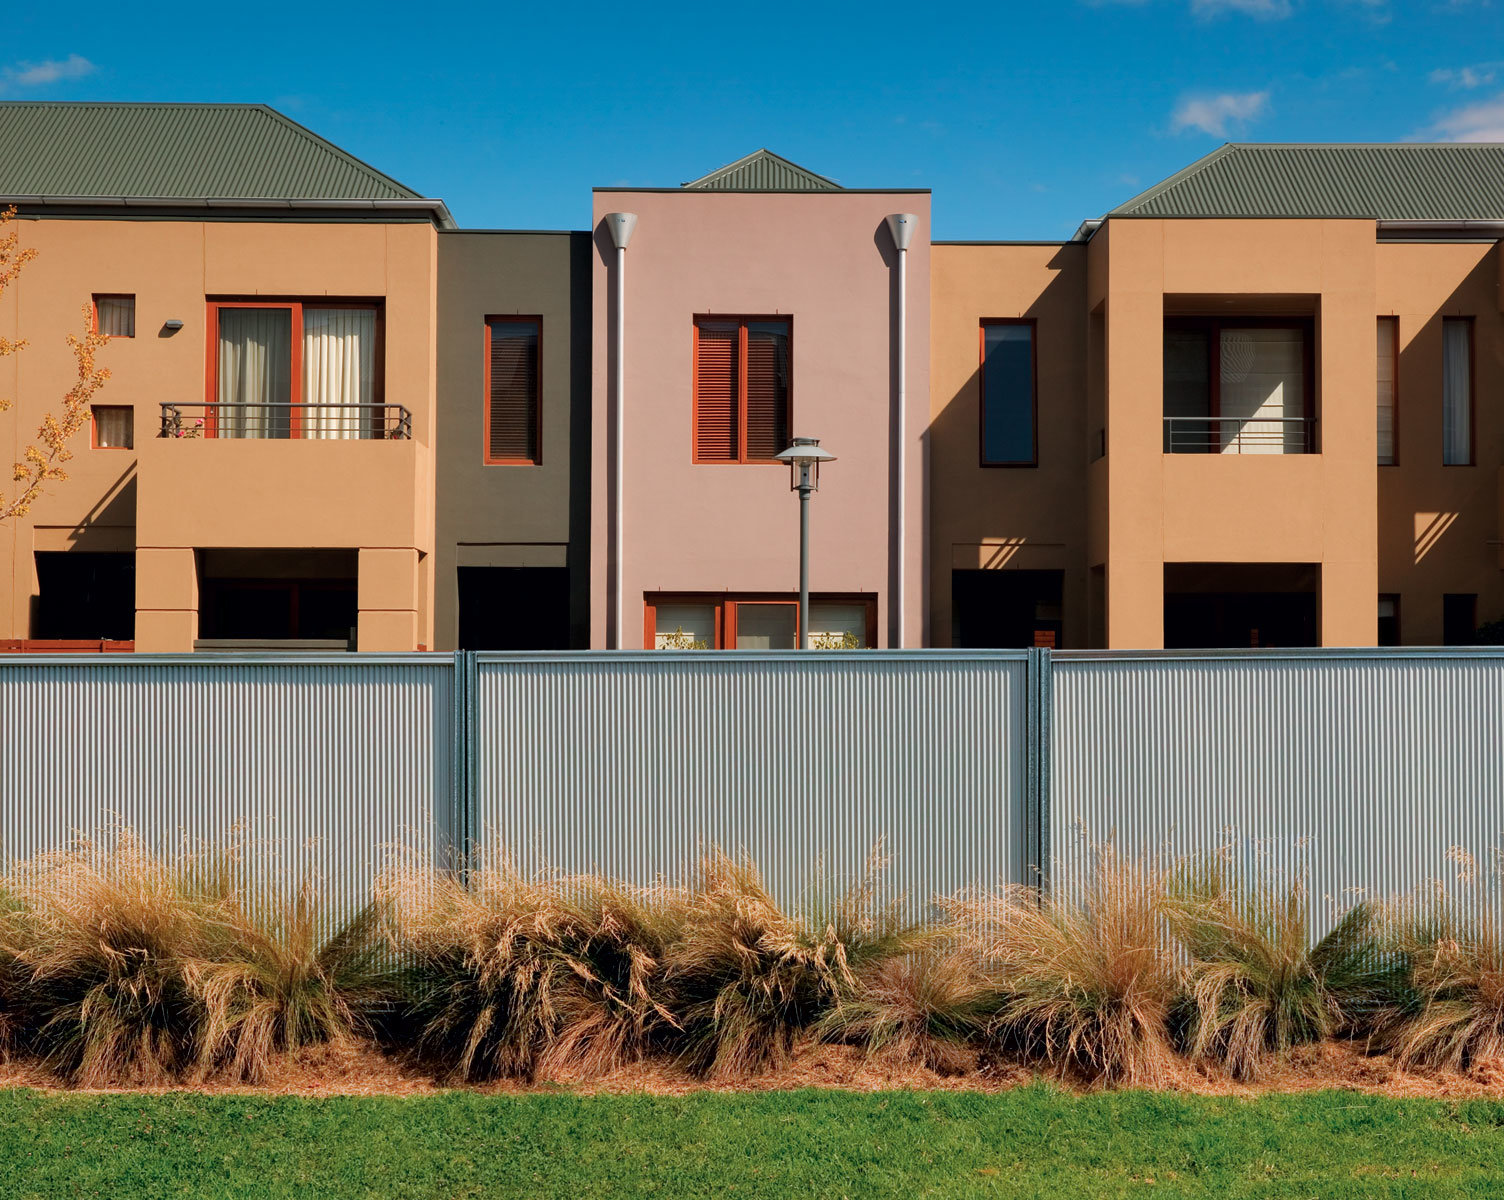 [Hot Item] Australian Colorbond Siding/Colorbond Fencing Sheet